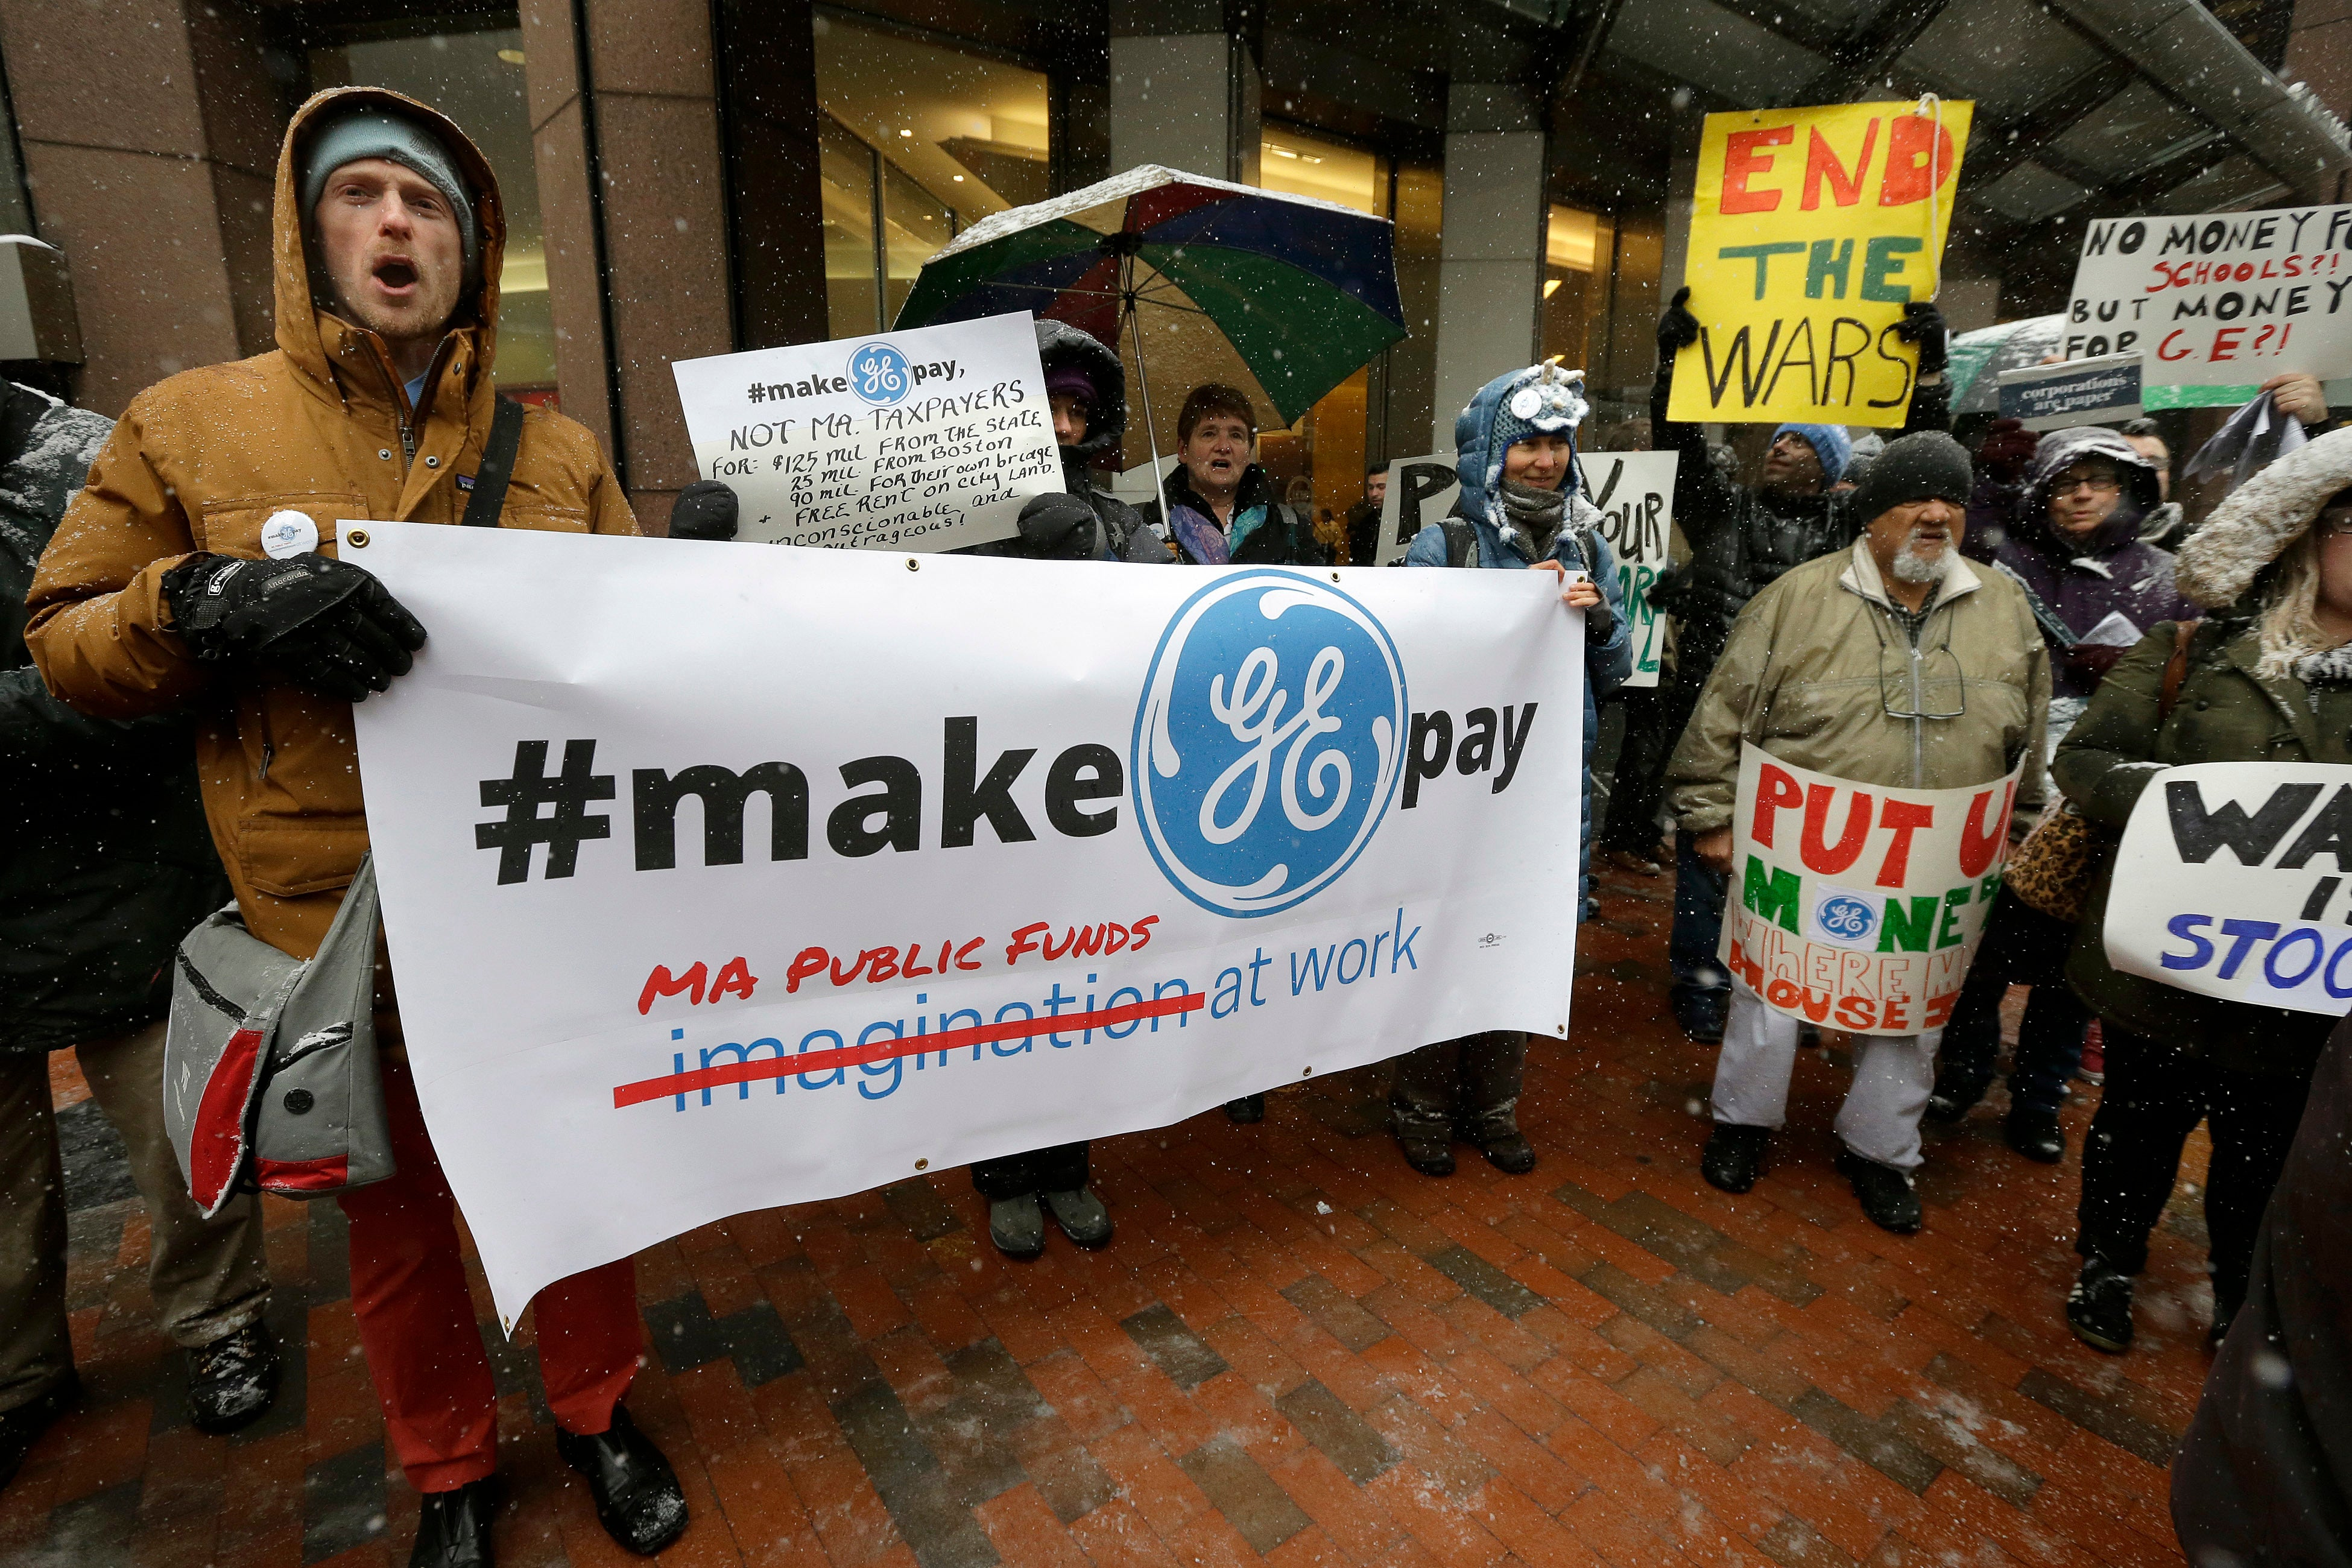 Protesters display placards outside the location of a news conference by General Electric CEO Jeff Immelt, Massachusetts Gov. Charlie Baker, and Boston Mayor Marty Walsh.